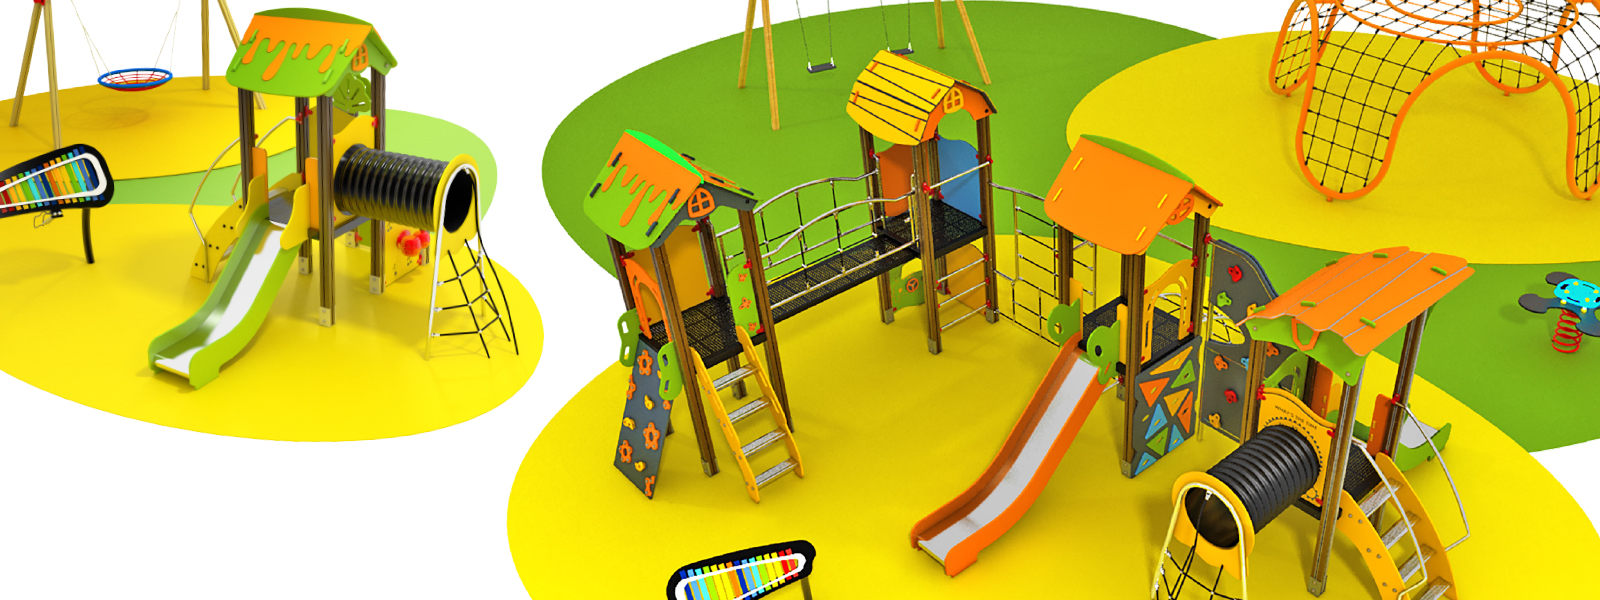 Can a playground be more than just a slide and a staircase